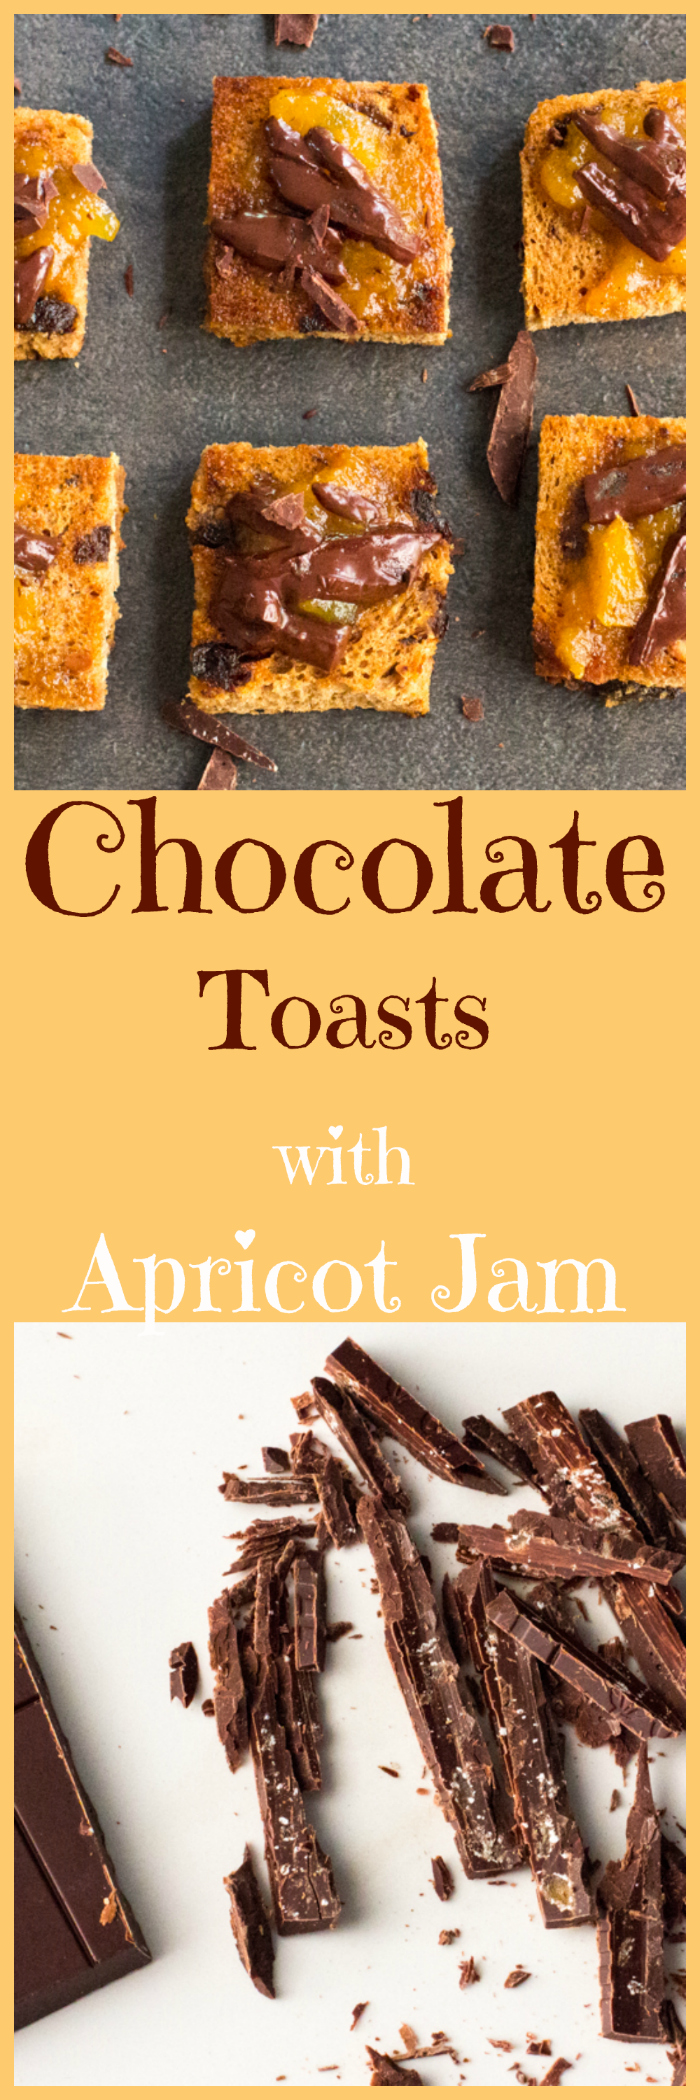 Cinnamon Raisin toasts, smeared with apricot jam, and topped with melty chocolate for a quick dessert.